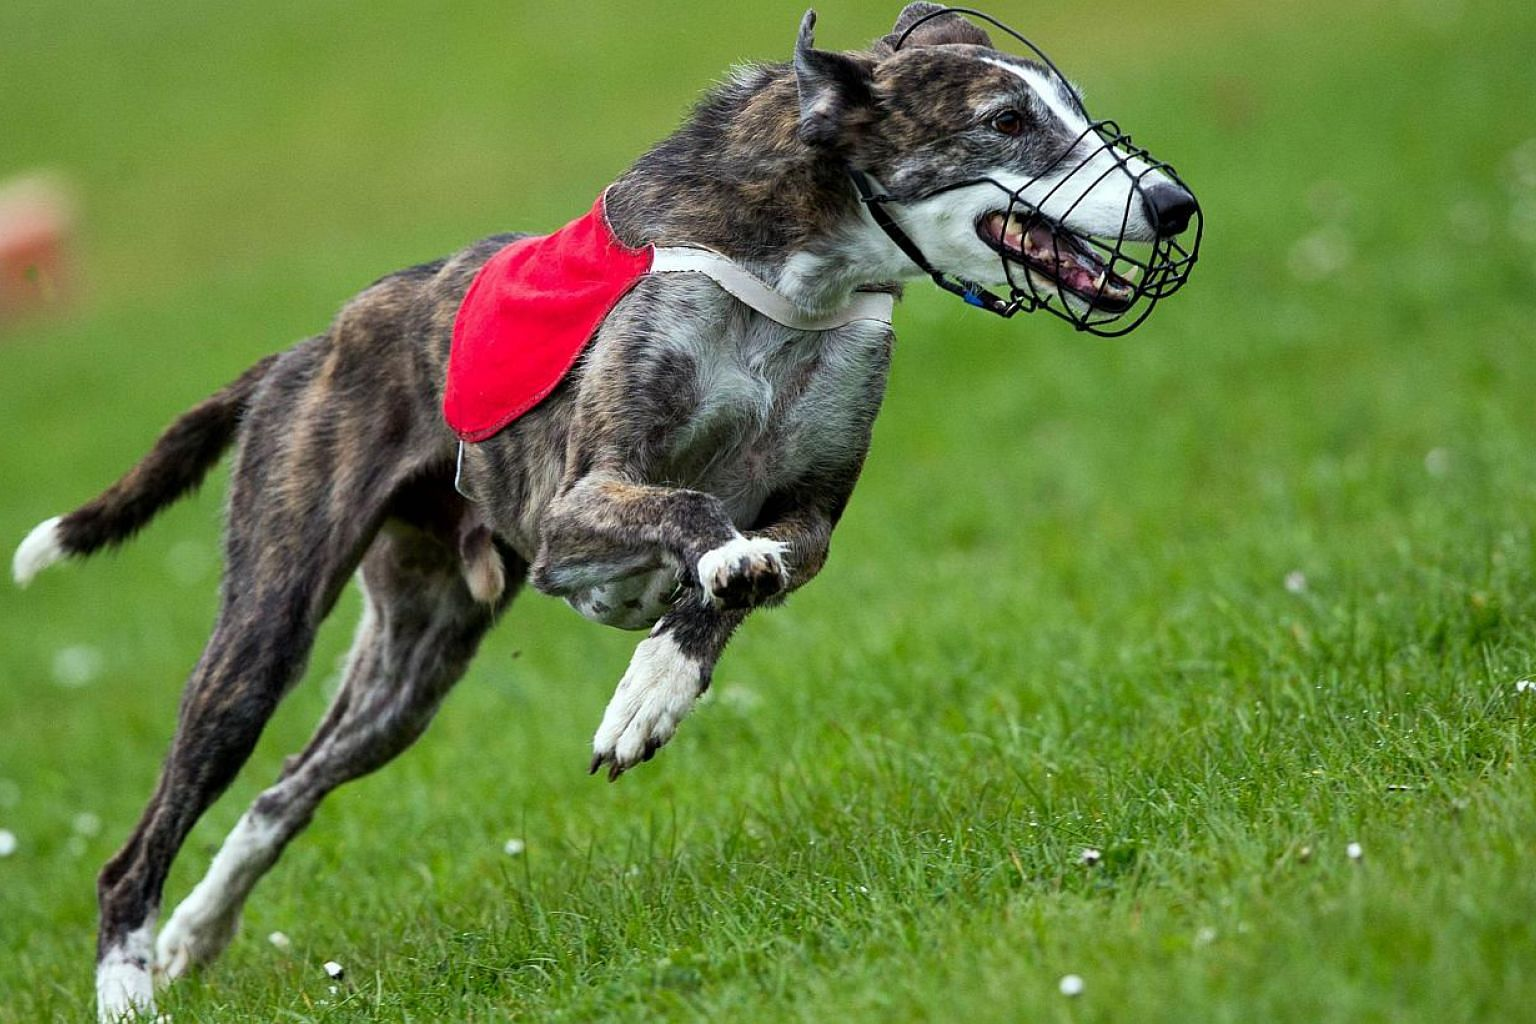 A greyhound competing on April 26, 2015, in Wismar, Germany. Two men have been charged in Australia with using kittens as live bait to train greyhounds, following allegations that piglets, rabbits and possums were also used in the sport. -- PHOTO: AF